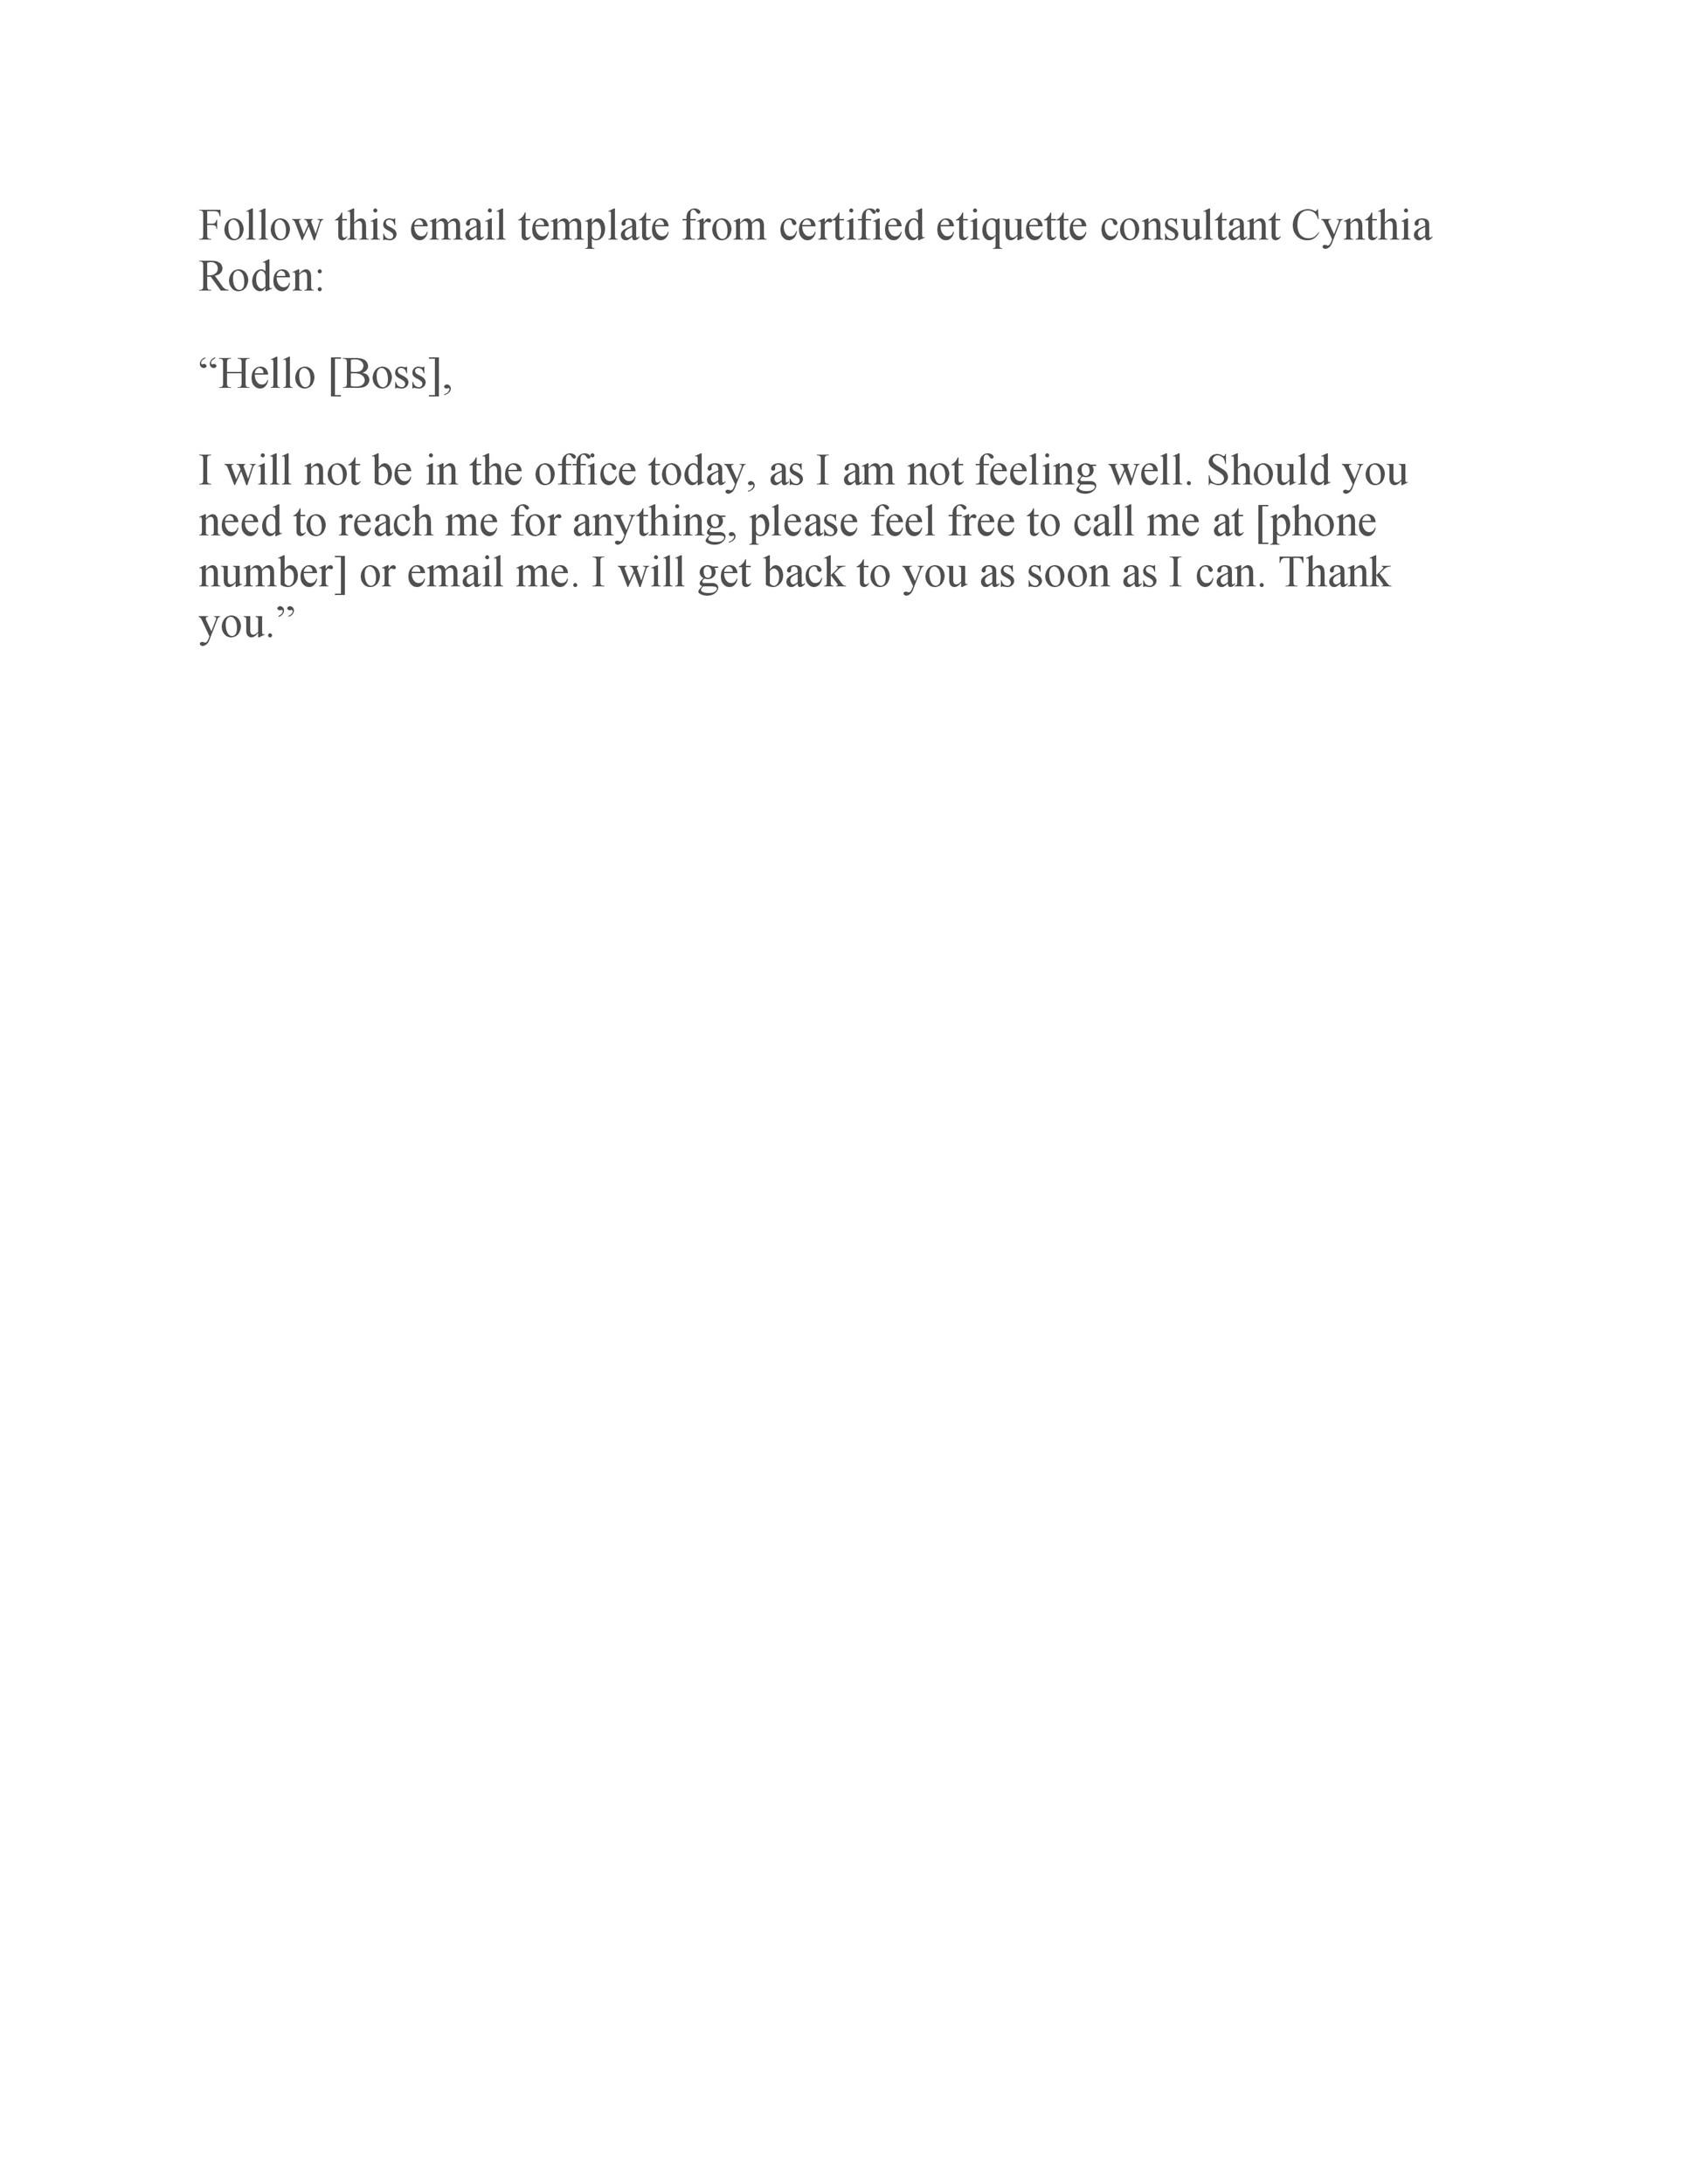 Free sick leave email 26